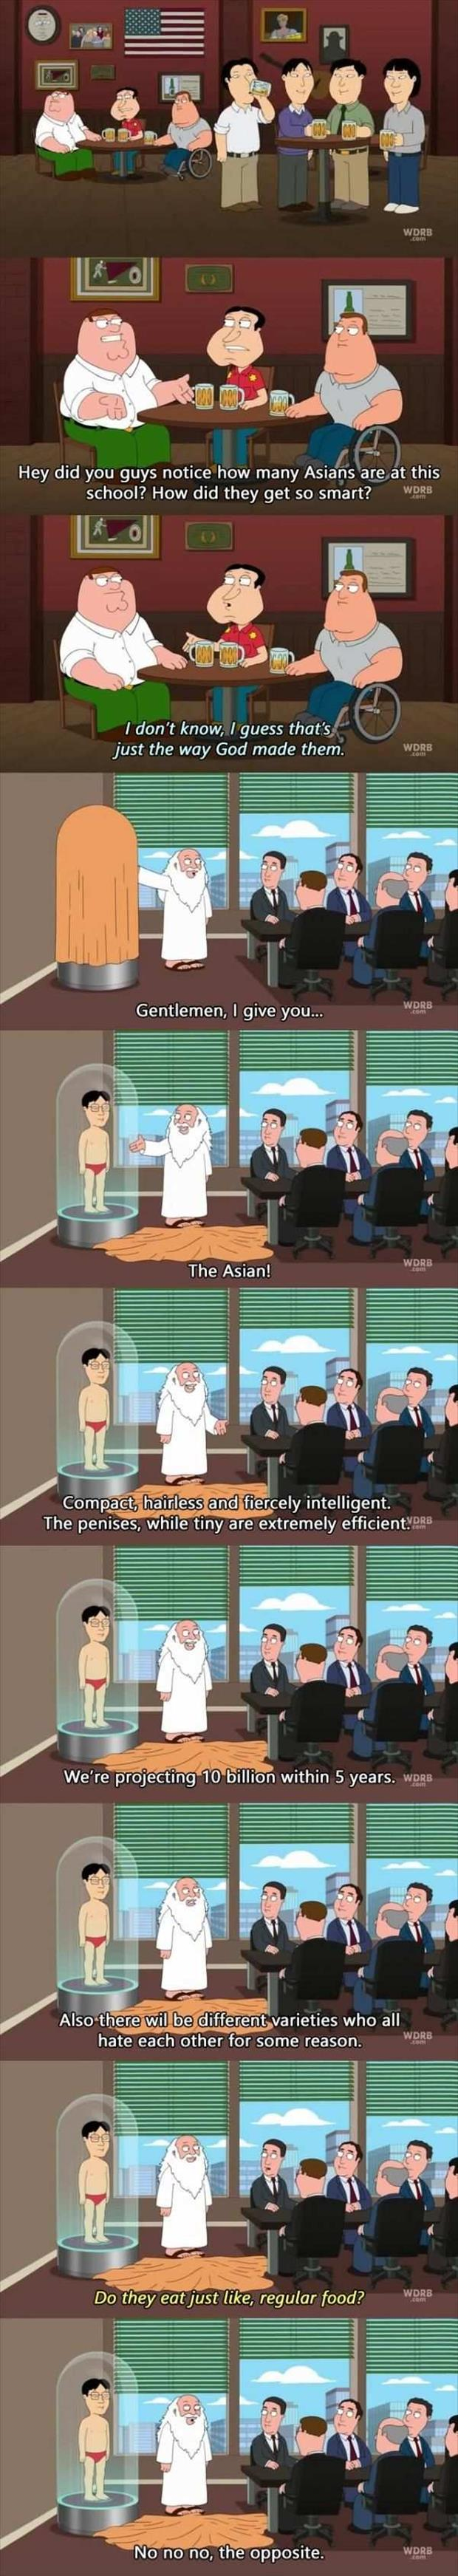 funny asians family guy